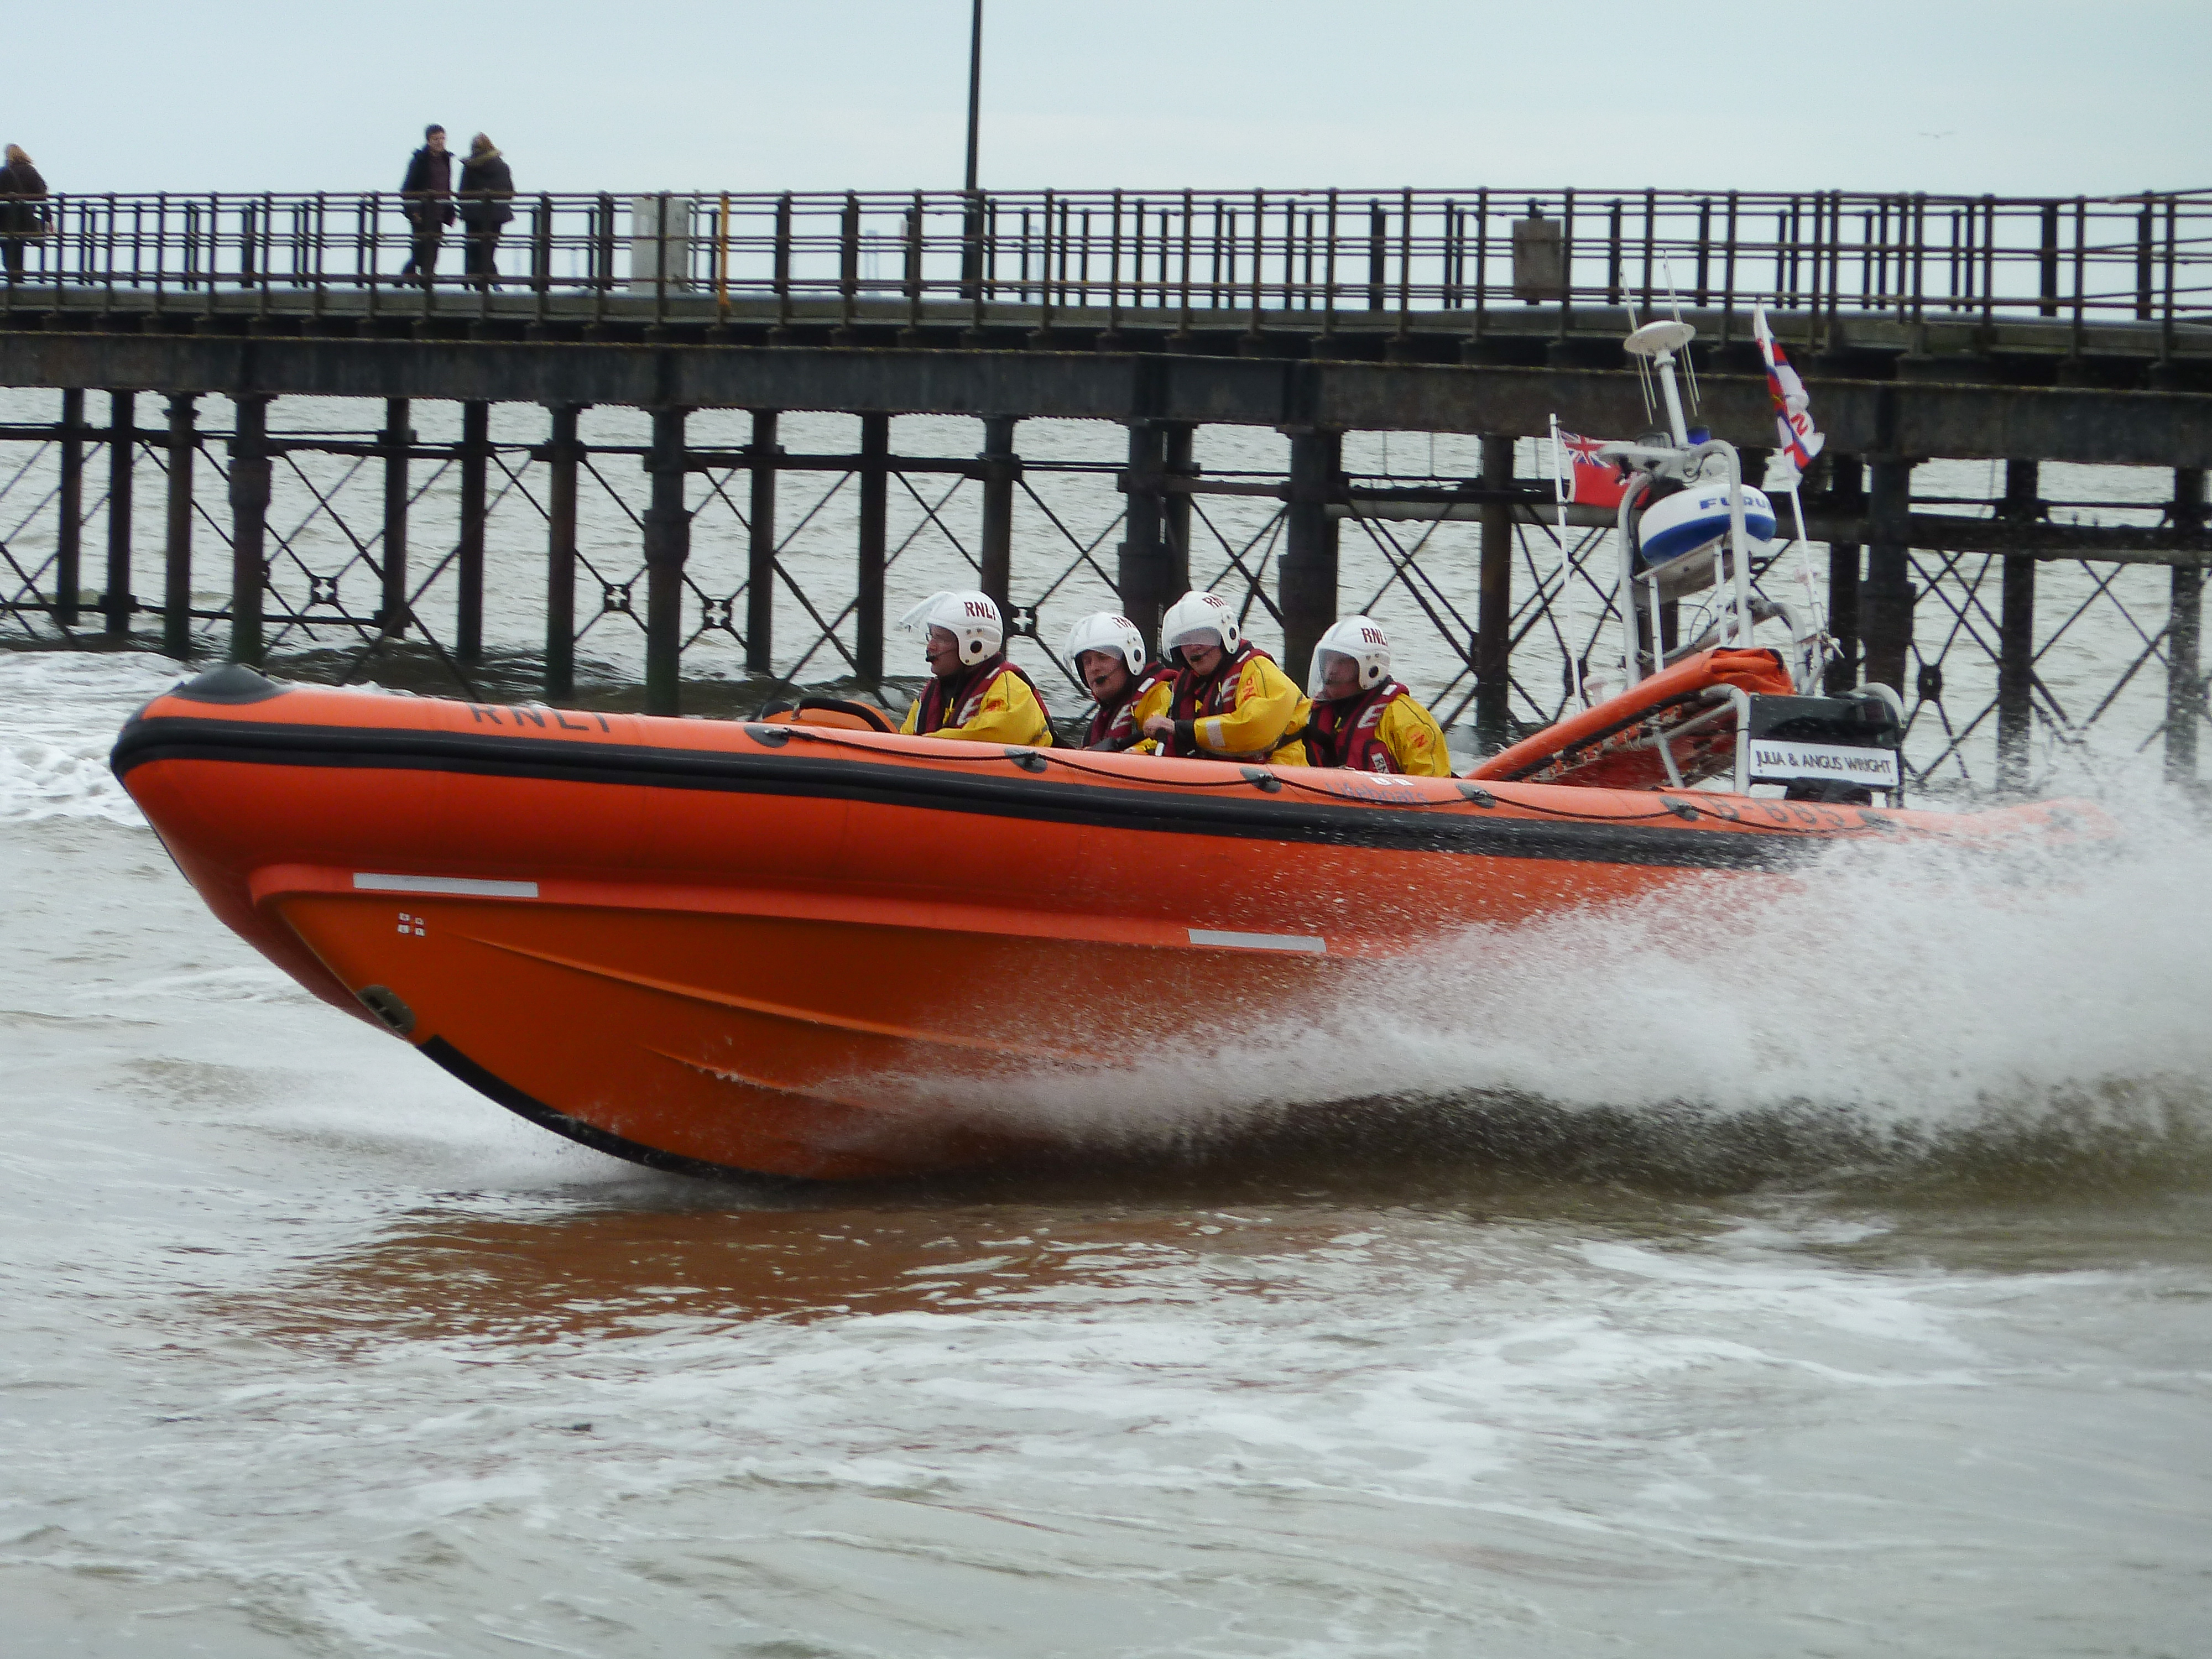 Photograph of Southend Lifeboat Station's Atlantic 85 lifeboat.